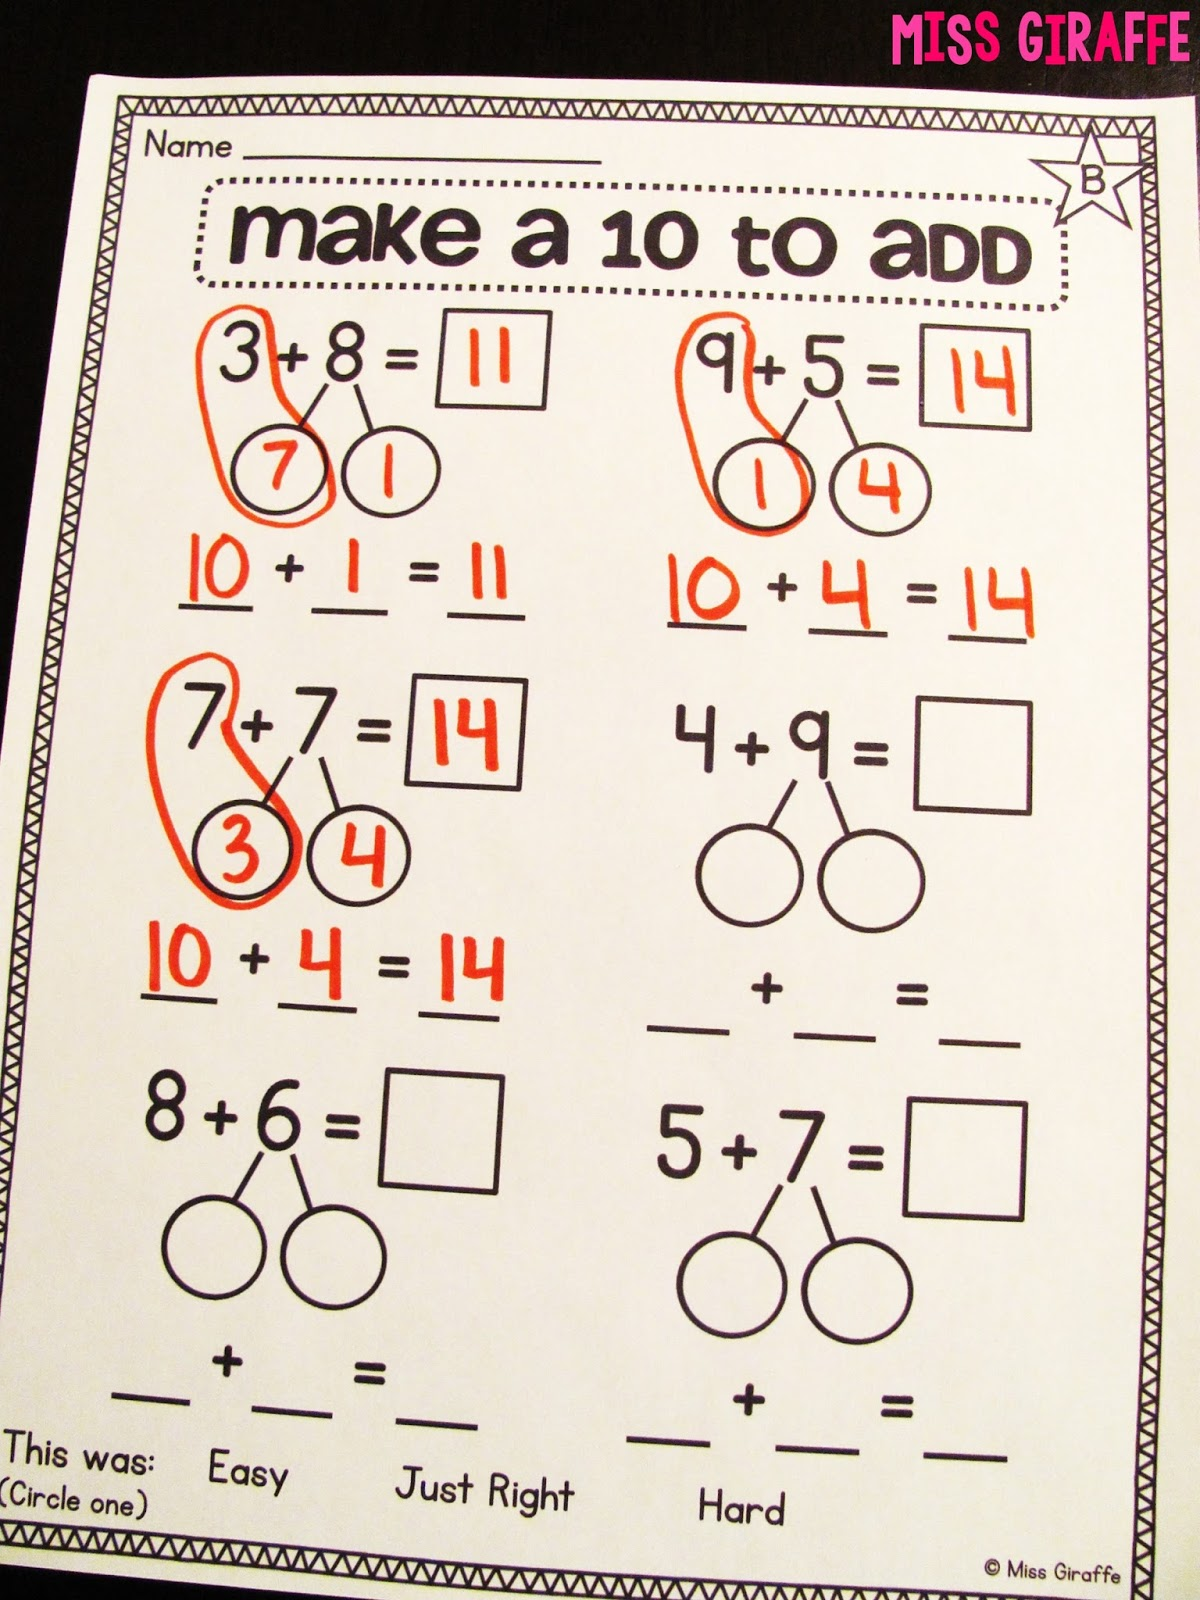 Miss Giraffes Class Making a 10 to Add – Composing and Decomposing Numbers Worksheet